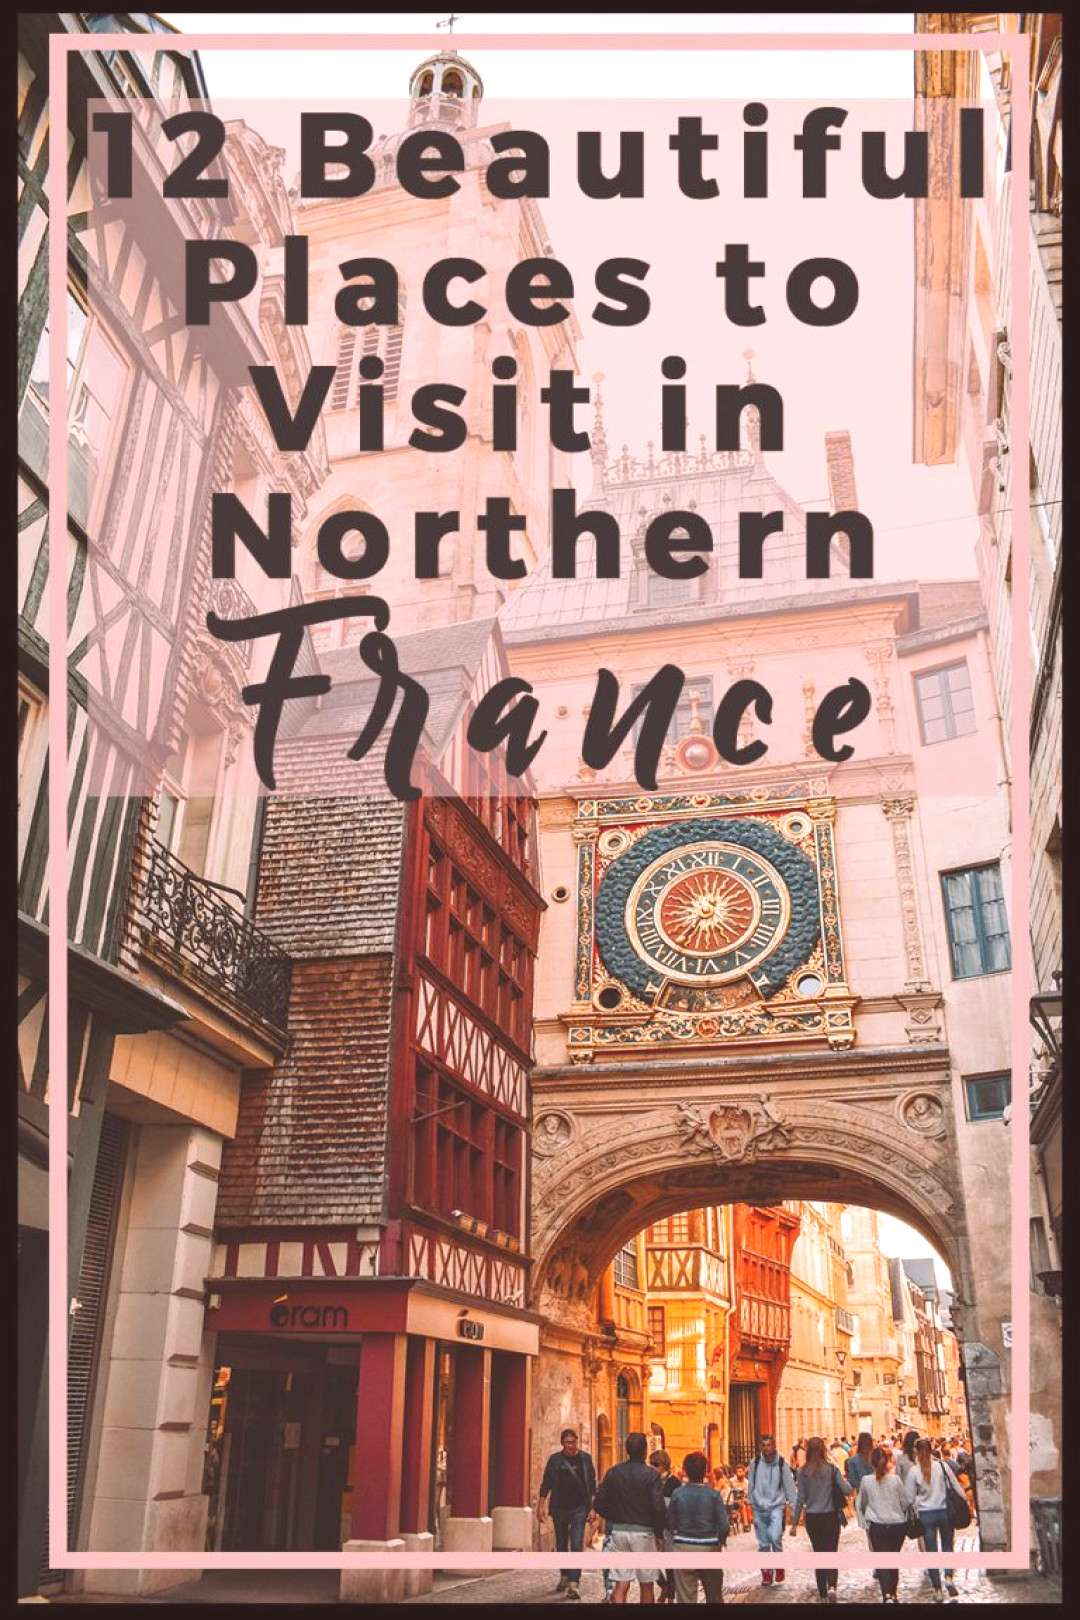 12 Beautiful Places to Visit in Northern France   Plan Your Visit in Northern France with These 12